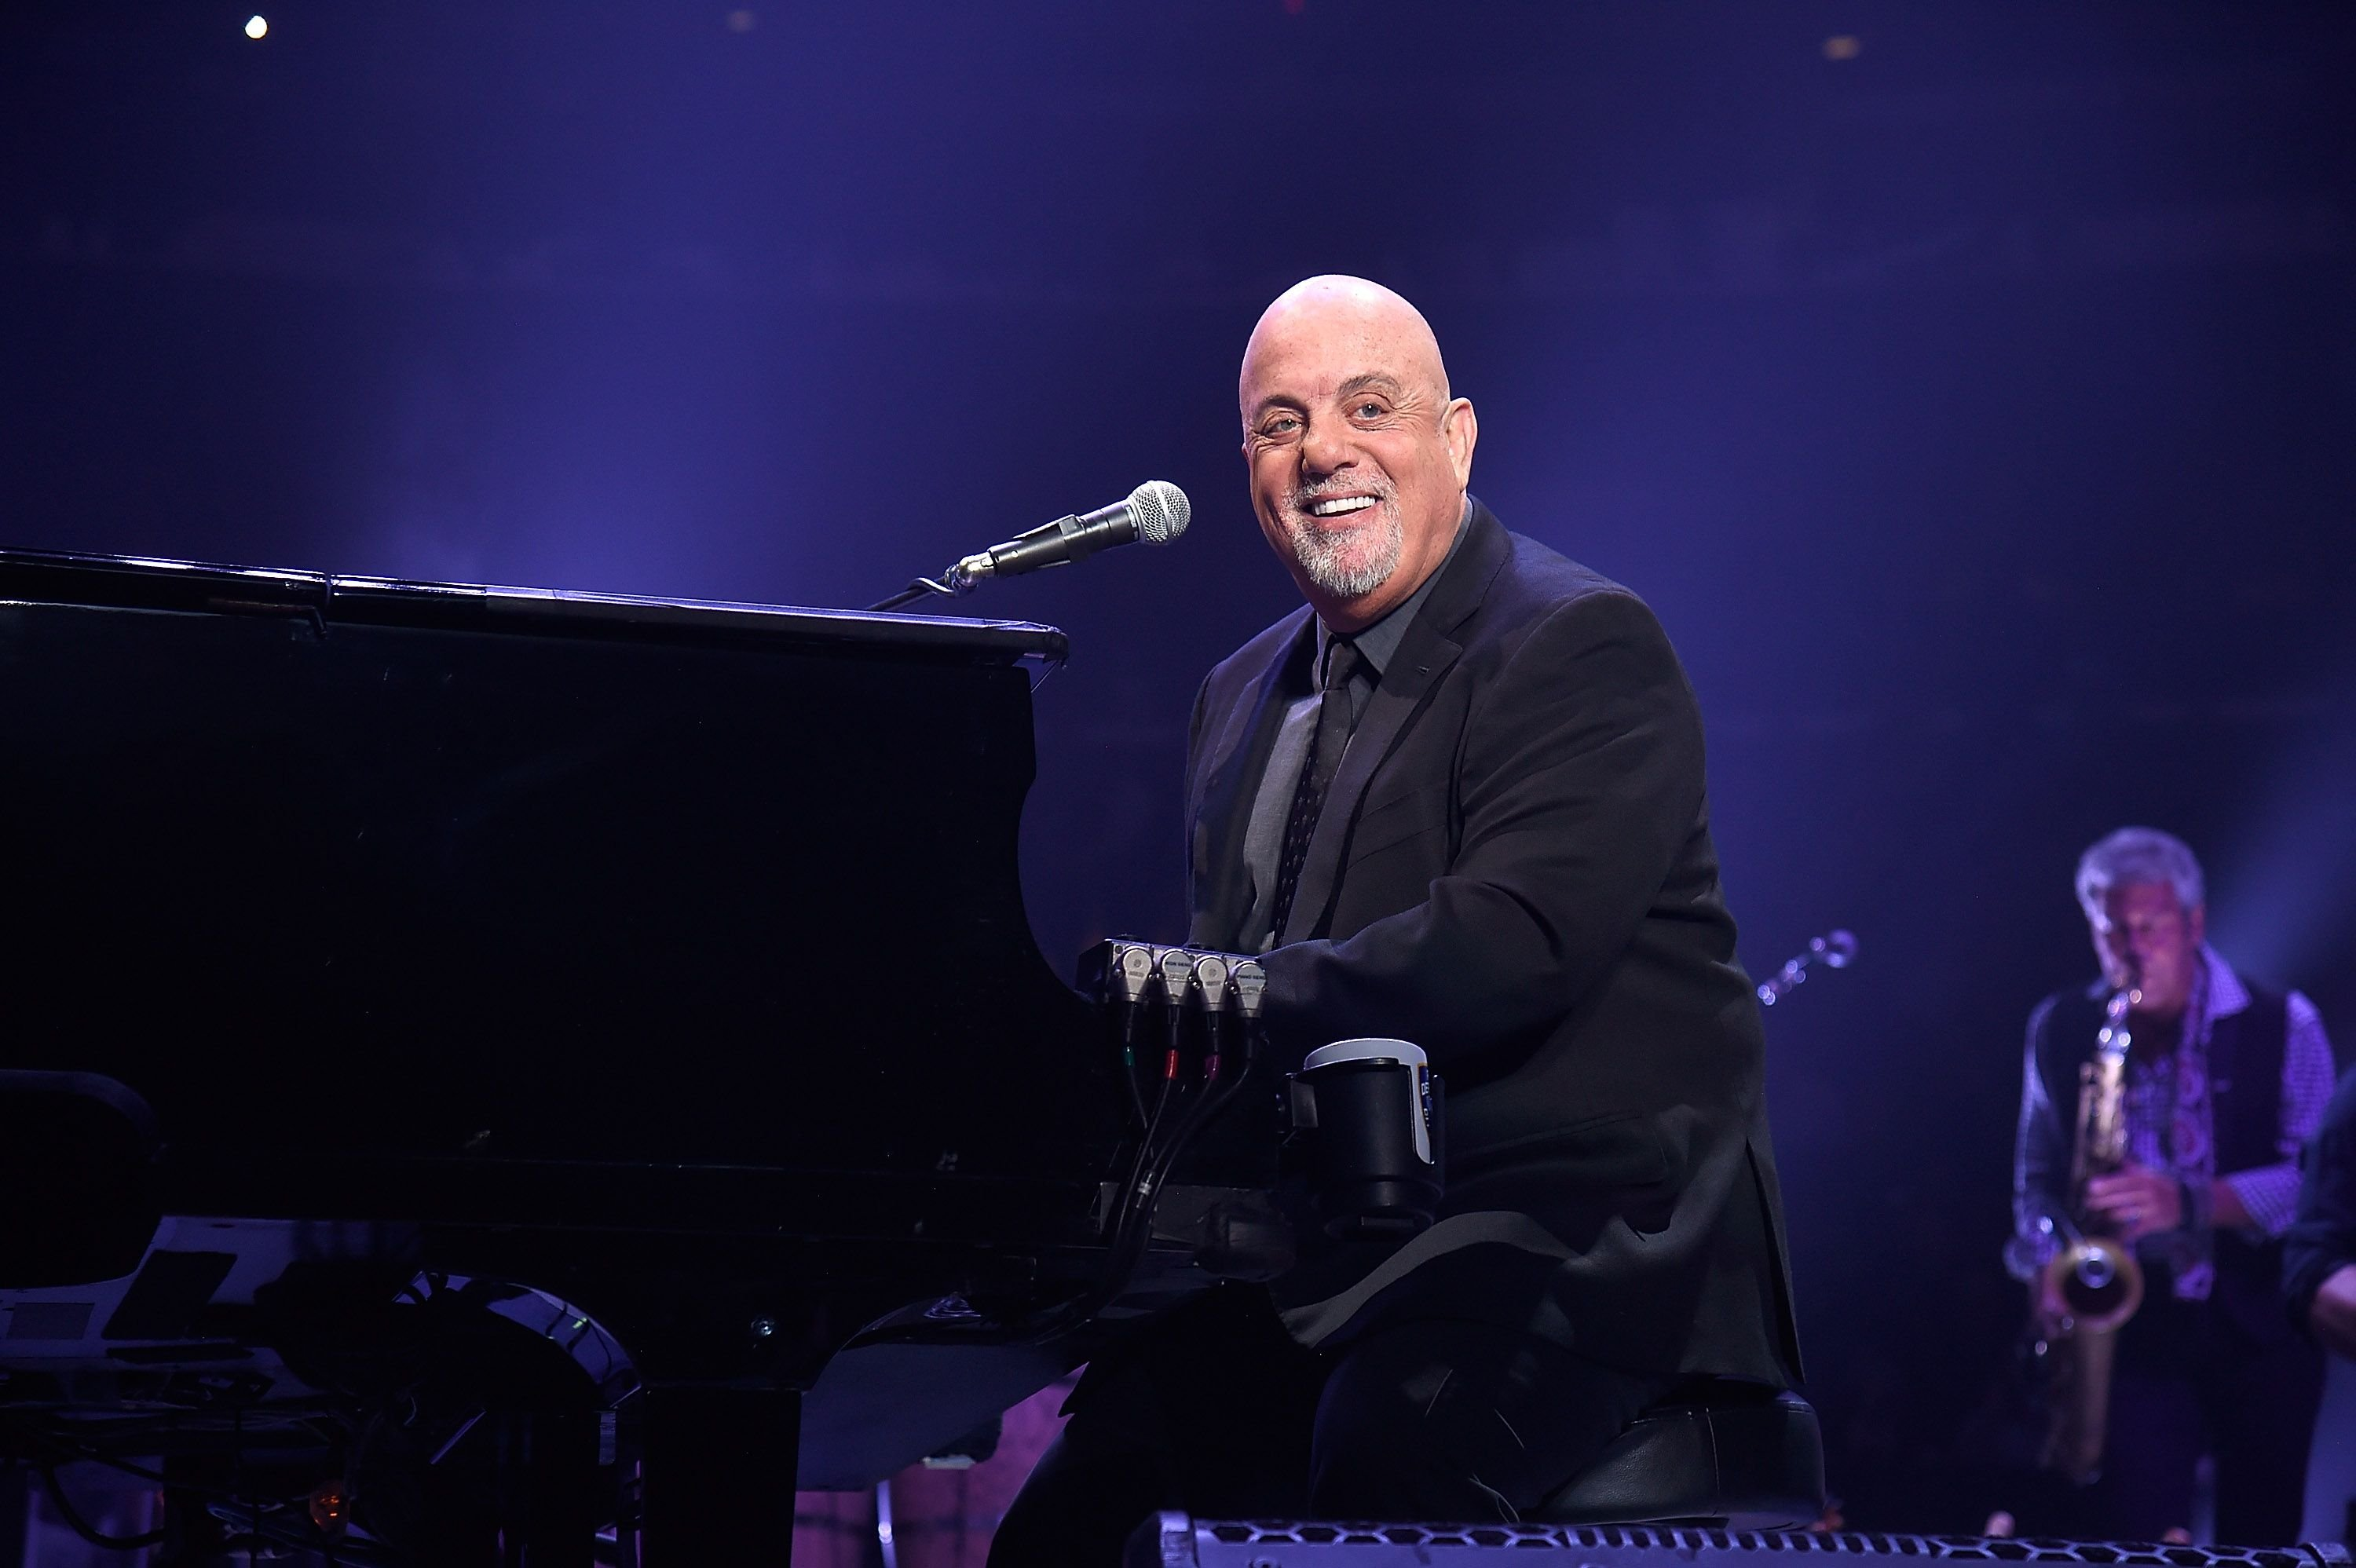 Billy Joel at Madison Square Garden on September 30, 2017 | Photo: Getty Images